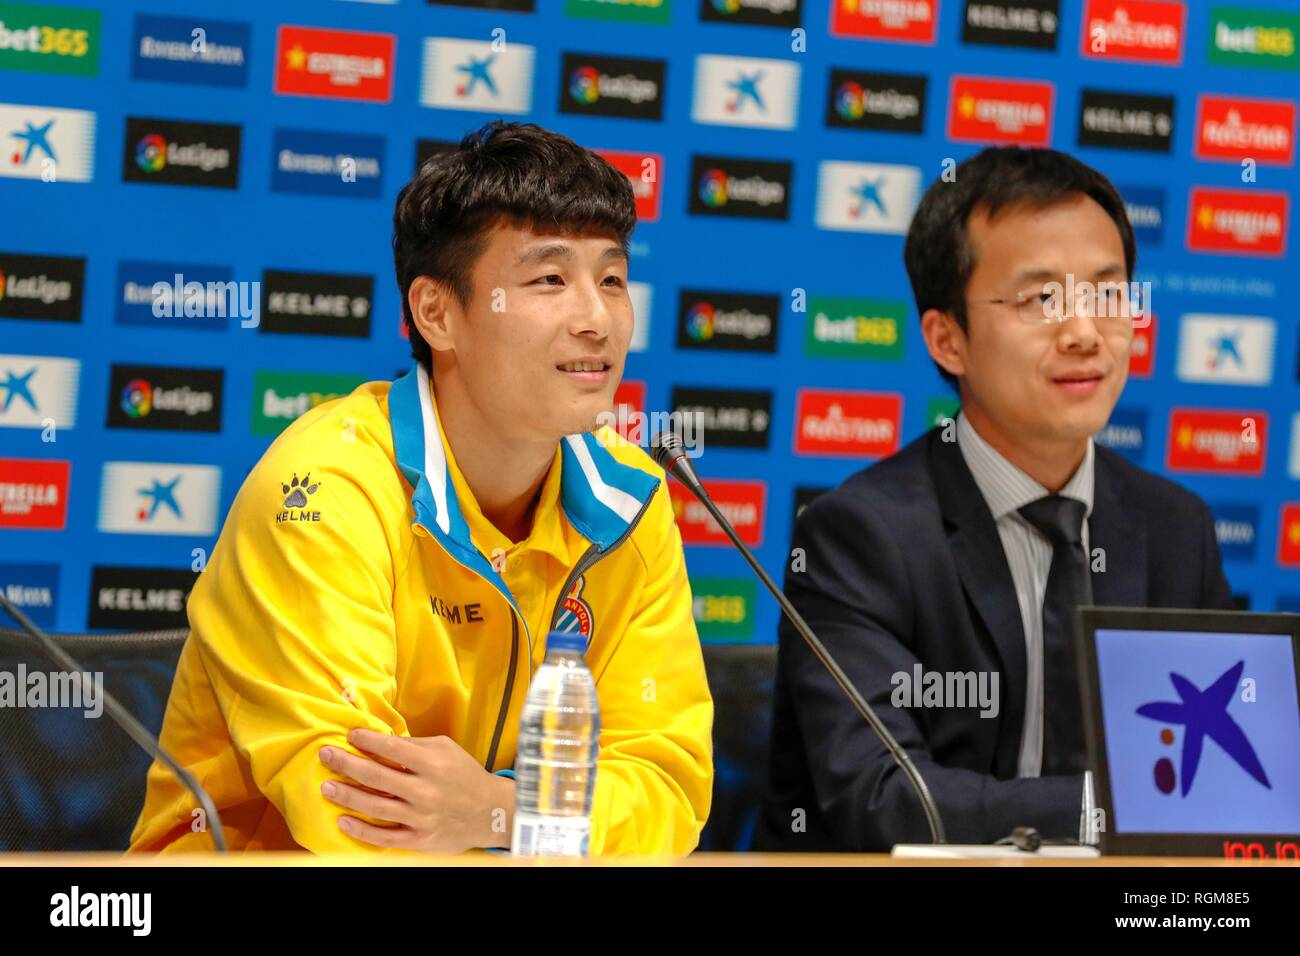 (190130) -- MADRID, Jan. 30, 2019 (Xinhua) -- Wu Lei (L) attends his first press conference held by RCD Espanyol in Barcelona, Spain, Jan. 29, 2019. Spanish Liga Santander club, Espanyol presented the new coming Chinese striker Wu Lei to the fans and press on Tuesday. (Xinhua/Joan Gosa) - Stock Image